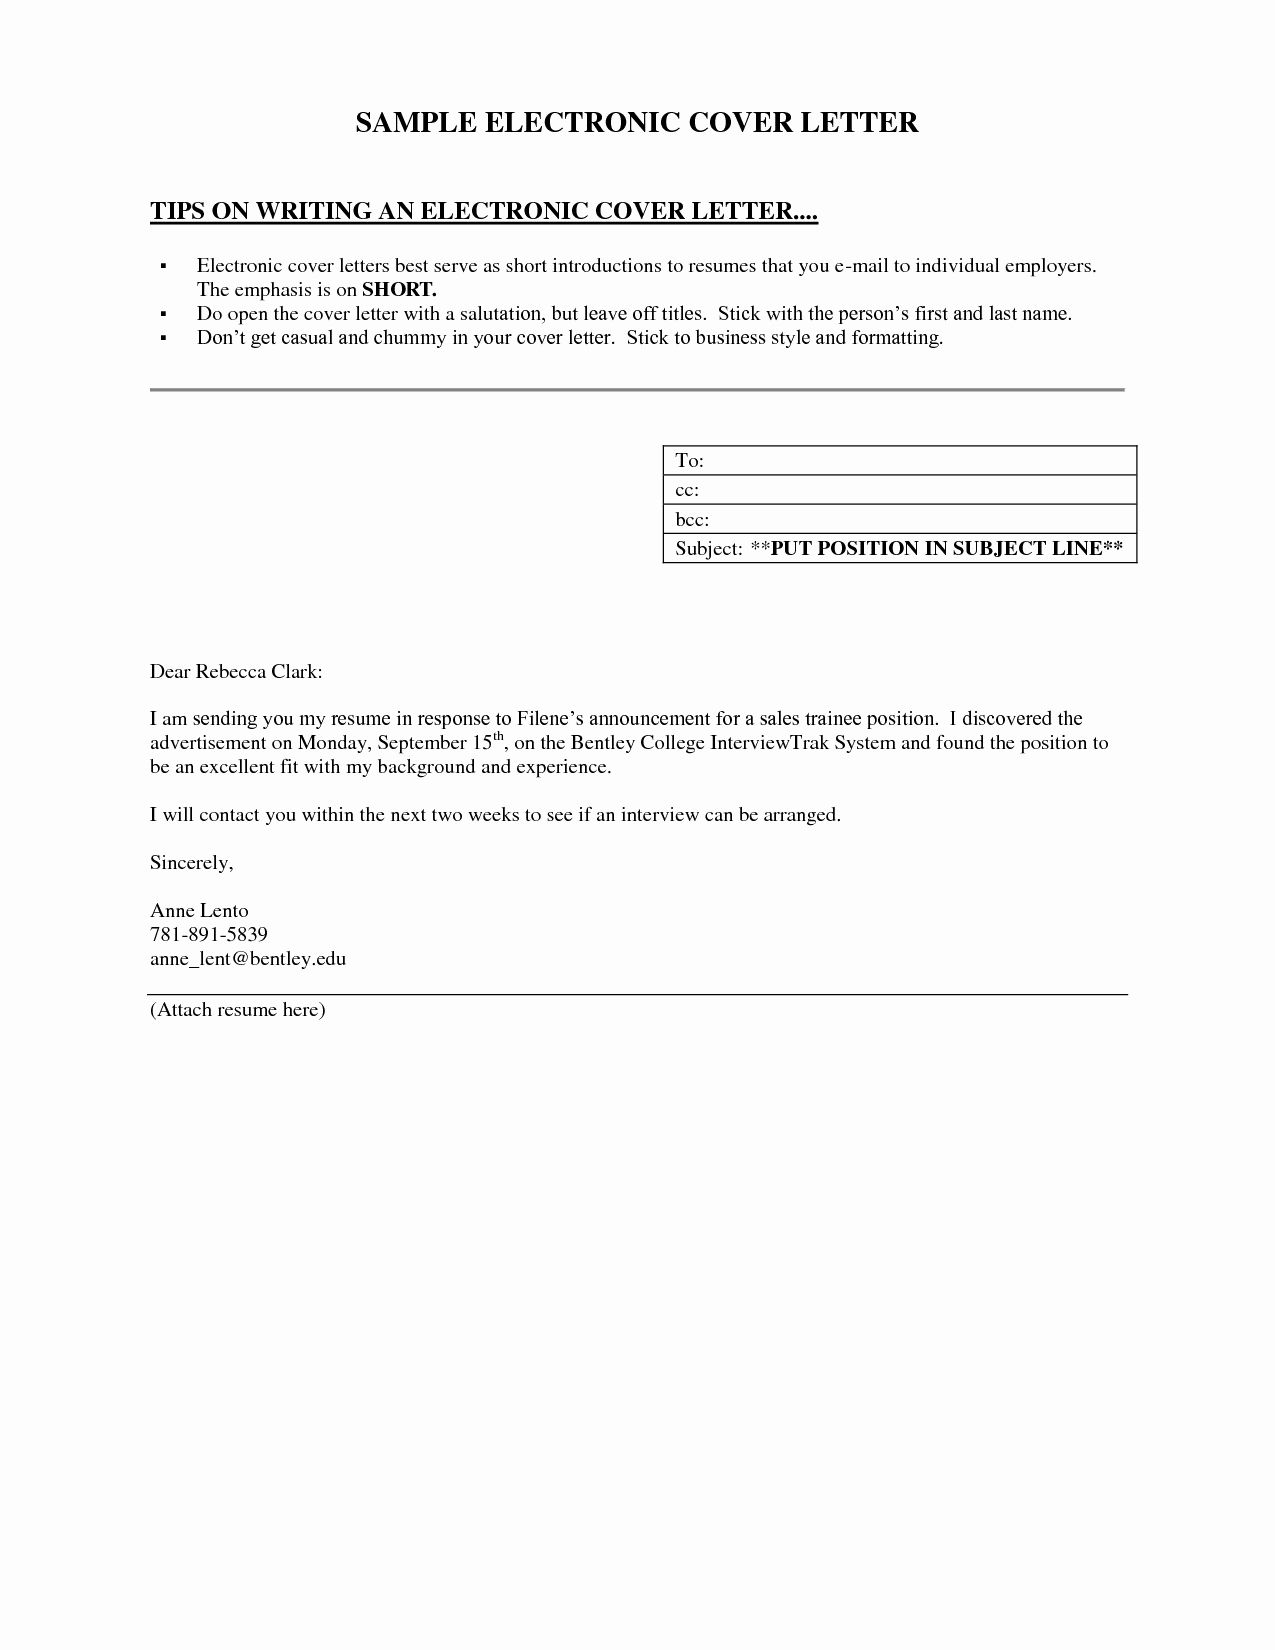 Sending Resume And Cover Letter Via Email 13 Best Of Sending Resumeemail Cover Letter Sles  Templates .